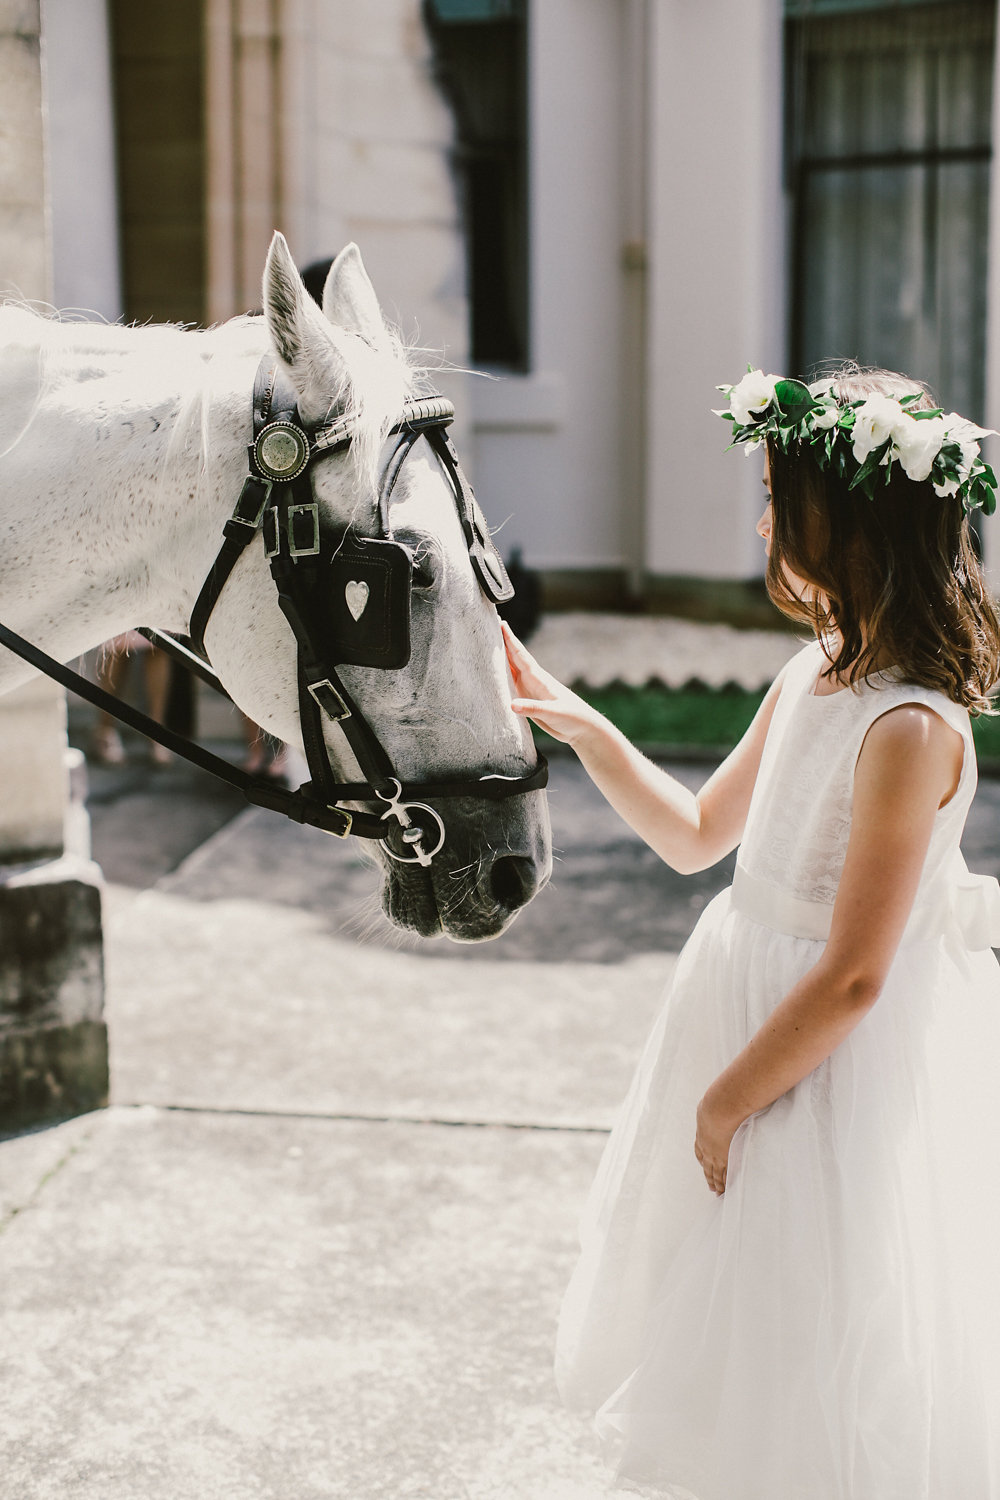 flower girl petting horse - photo by Lara Hotz http://ruffledblog.com/secret-garden-inspired-australian-wedding